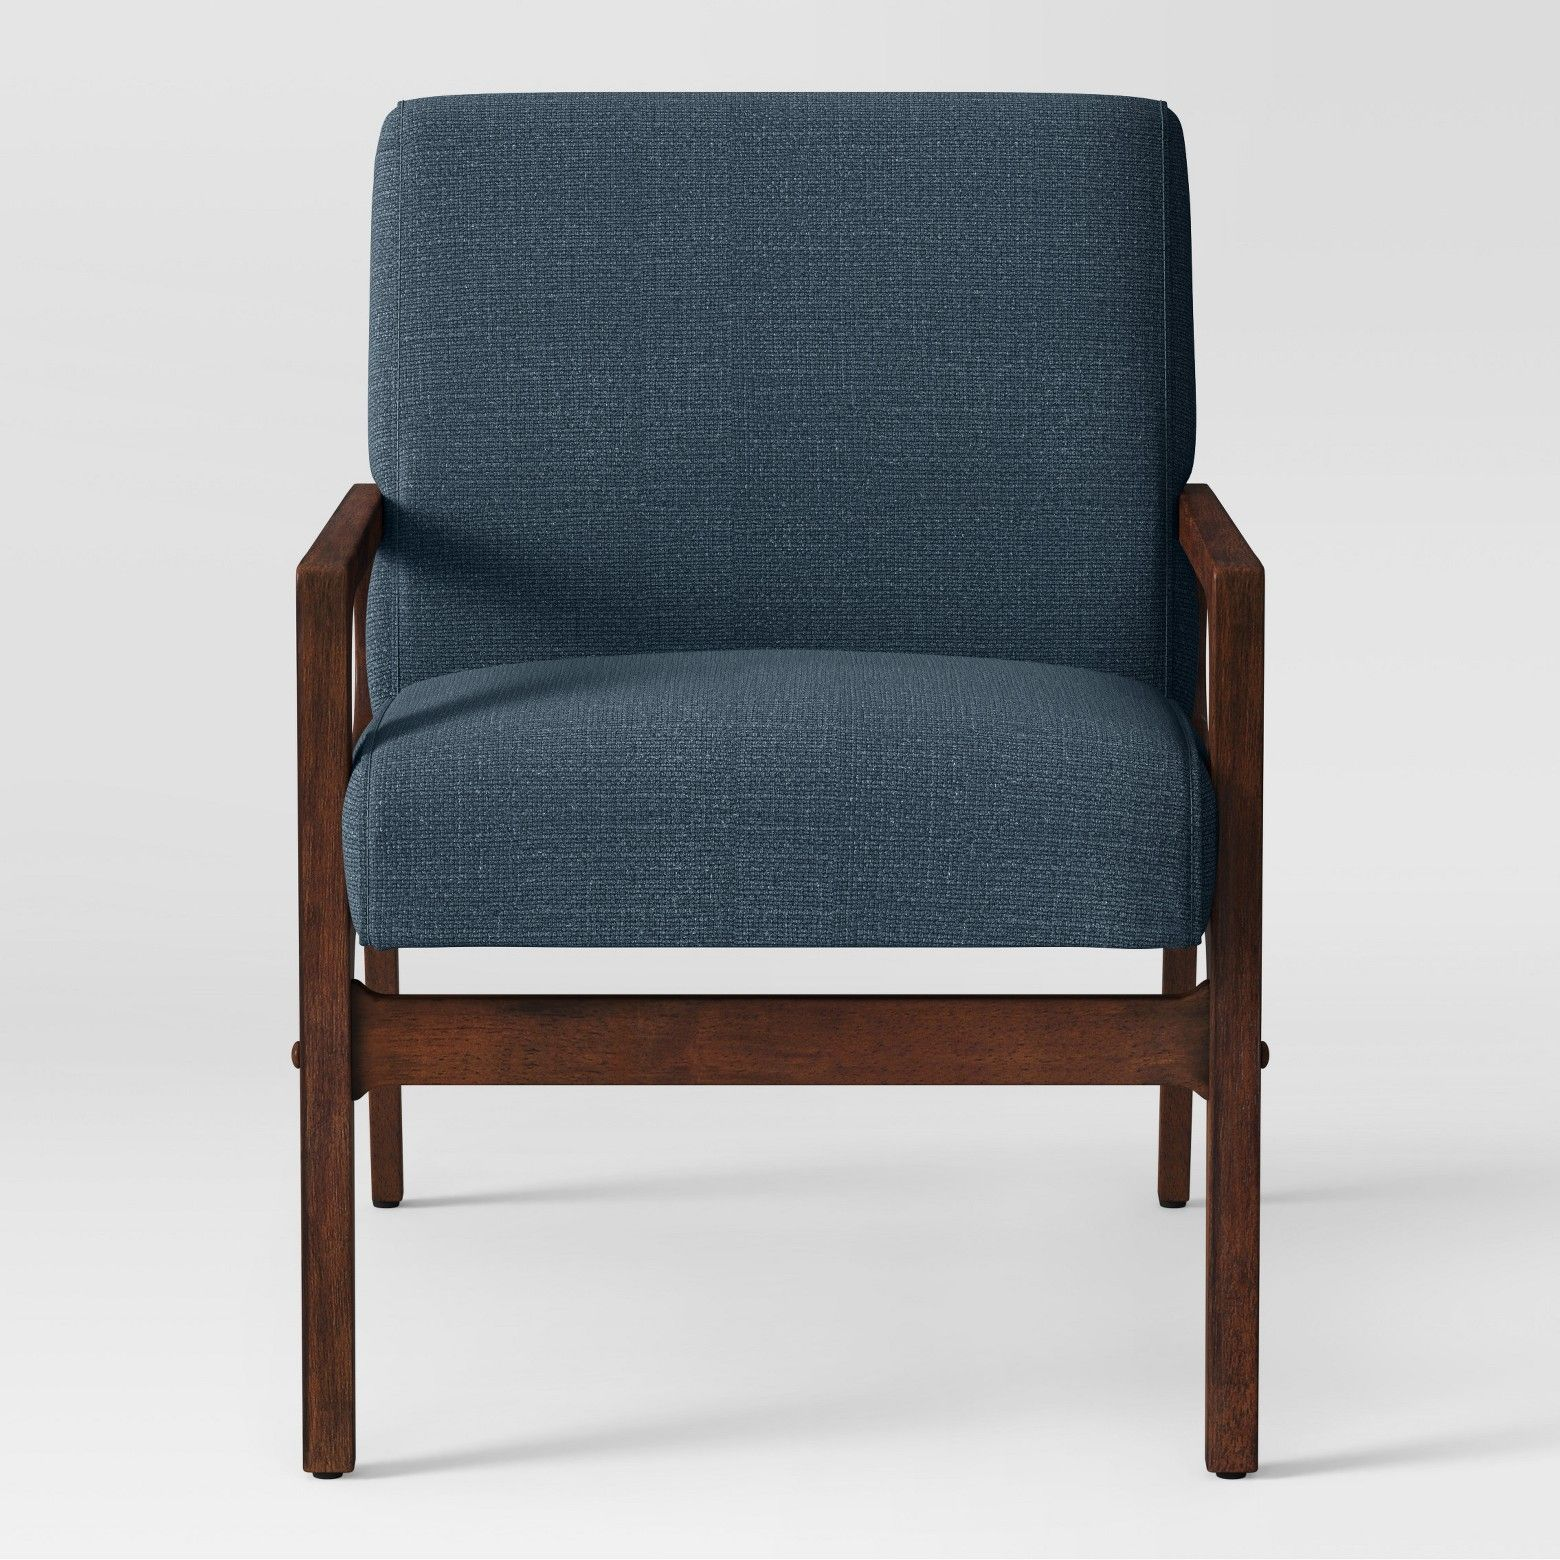 Project 62 Peoria Wood Arm Chair